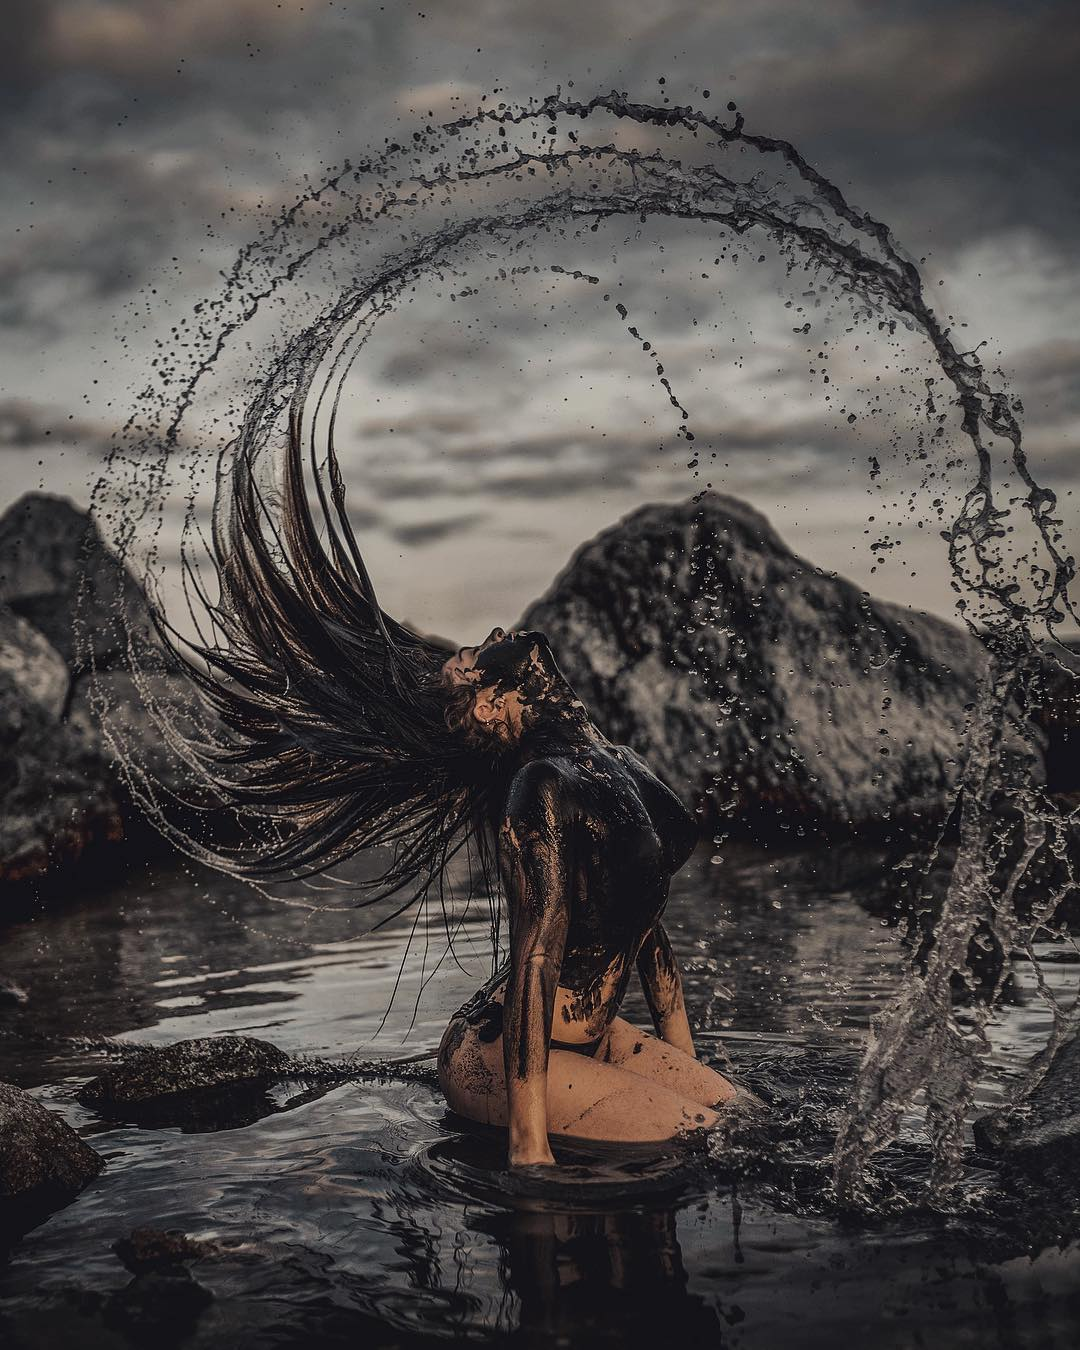 Dramatic Fantasy Portrait Photography Swirling Beauty of the Ocean